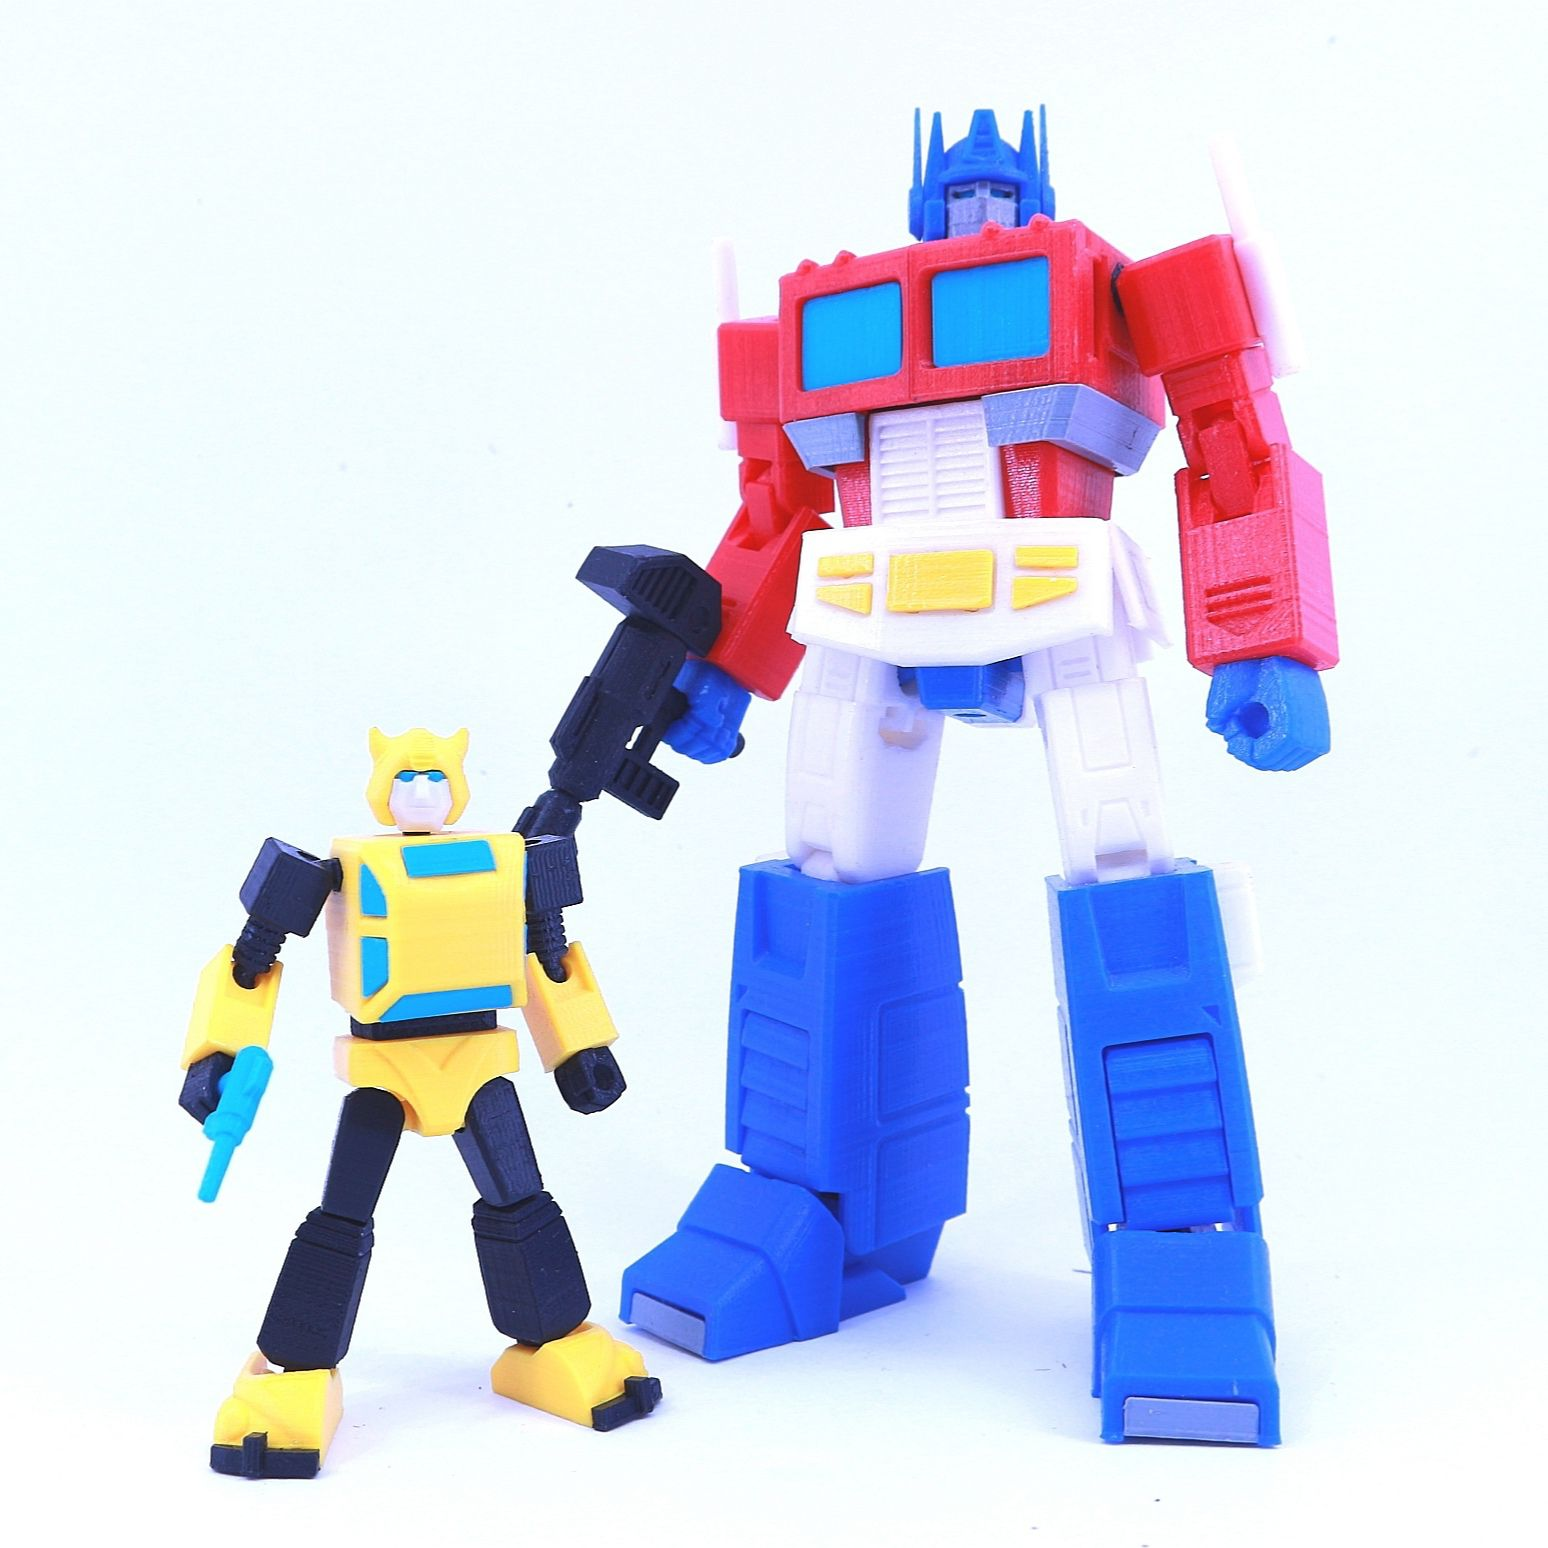 bee6.jpg Download free STL file ARTICULATED G1 TRANSFORMERS BUMBLEBEE - NO SUPPORT • 3D print template, Toymakr3D